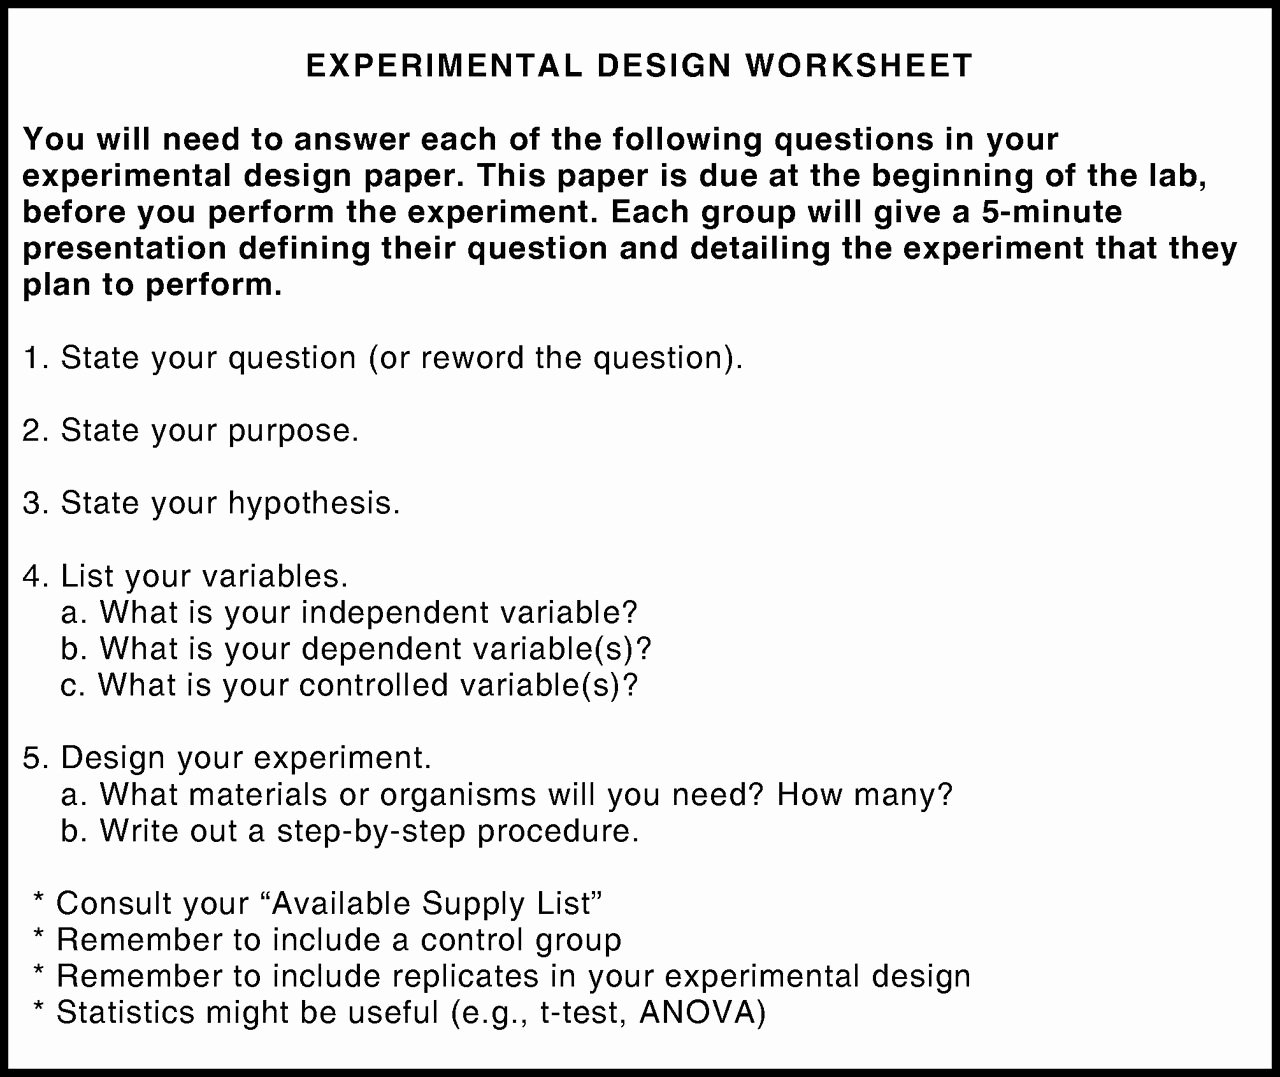 Experimental Design Worksheet Scientific Method Fresh Guided Inquiry Labs Using Bean Beetles for Teaching the